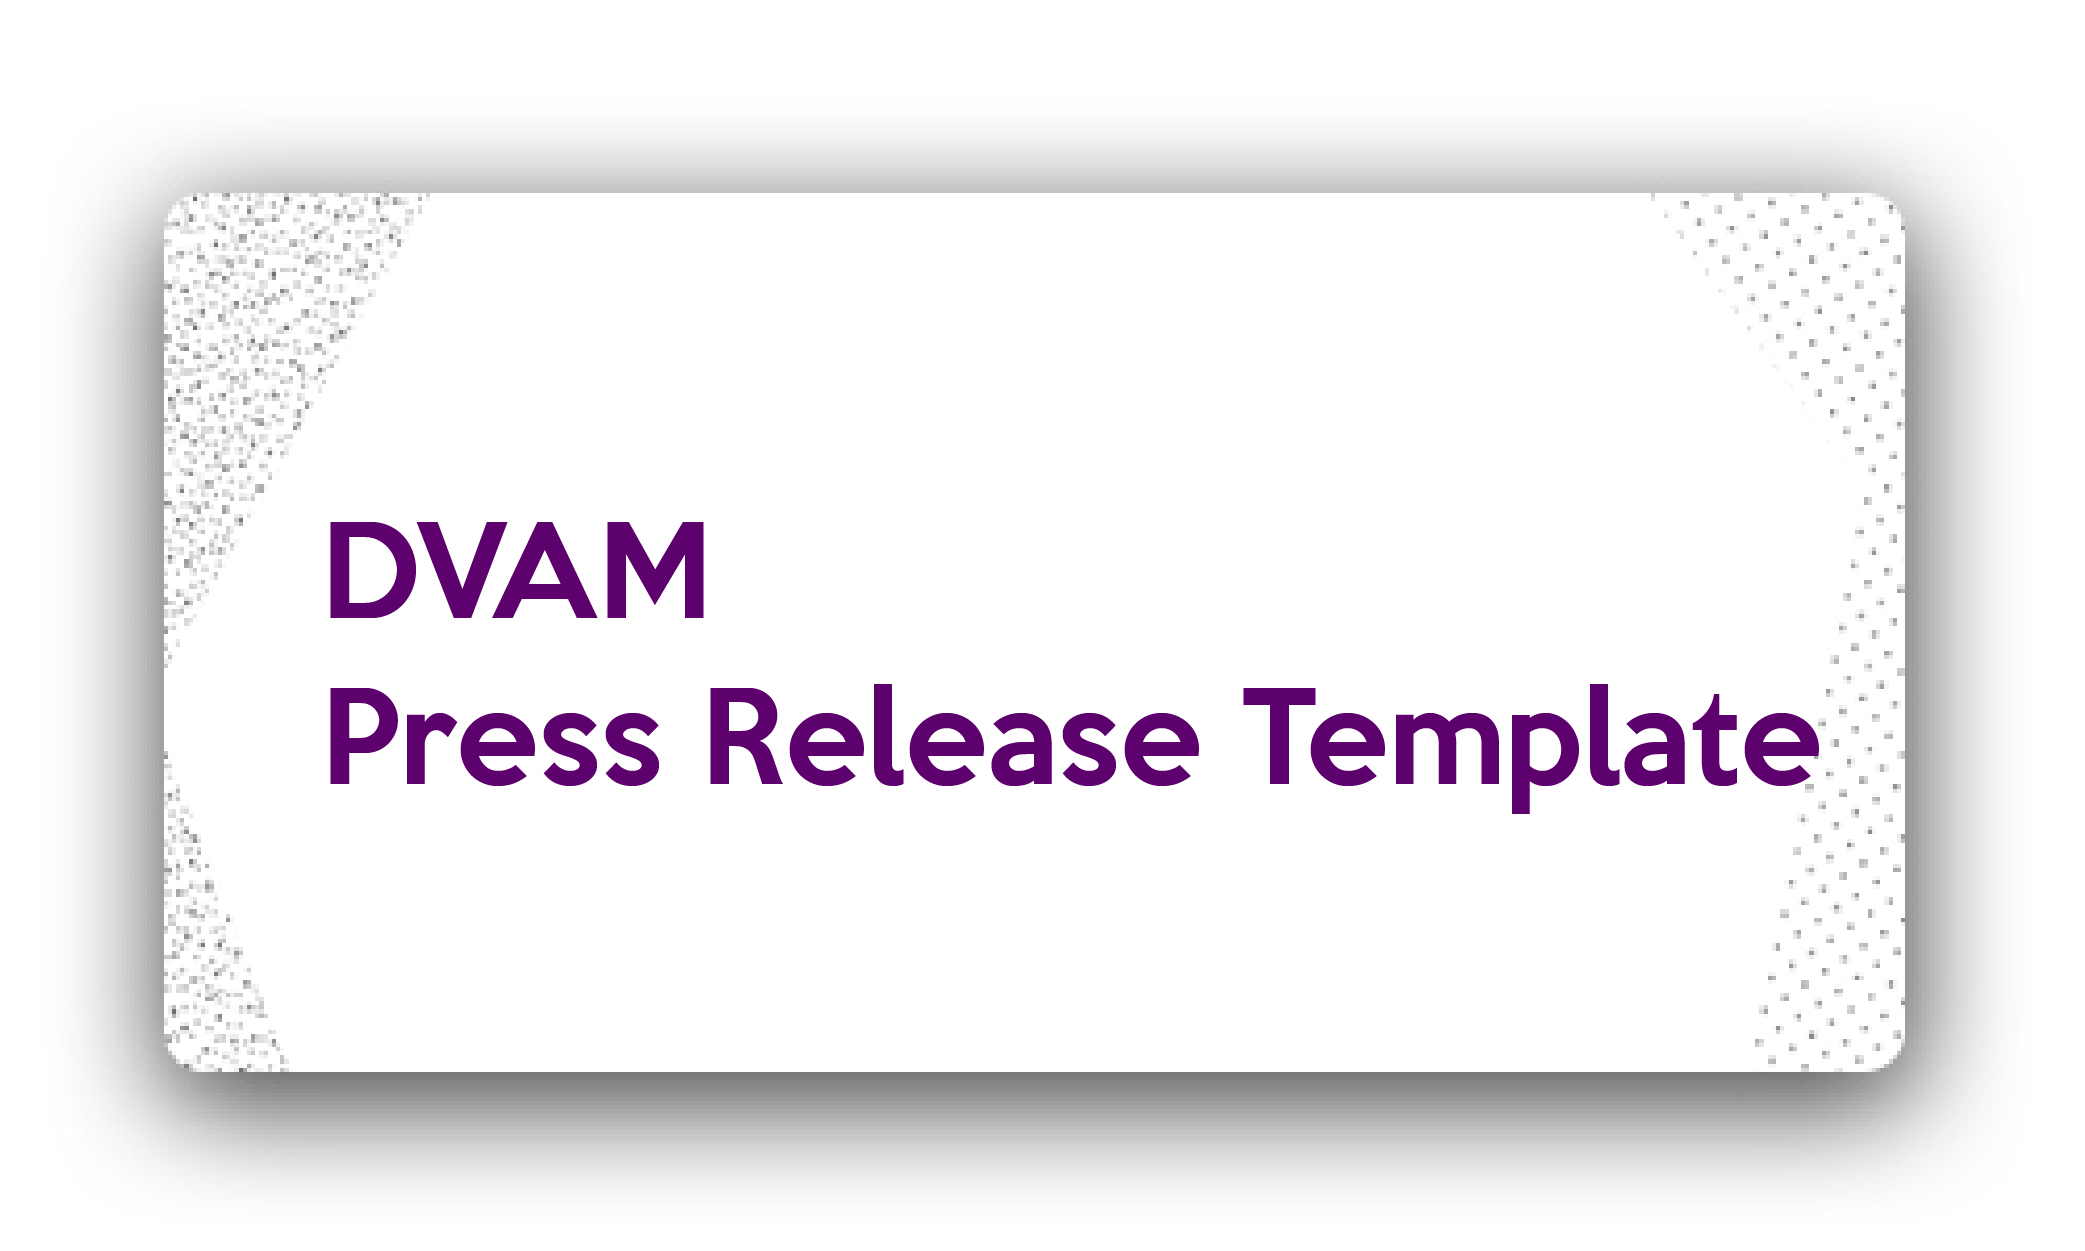 Title: DVAM Press Release Template